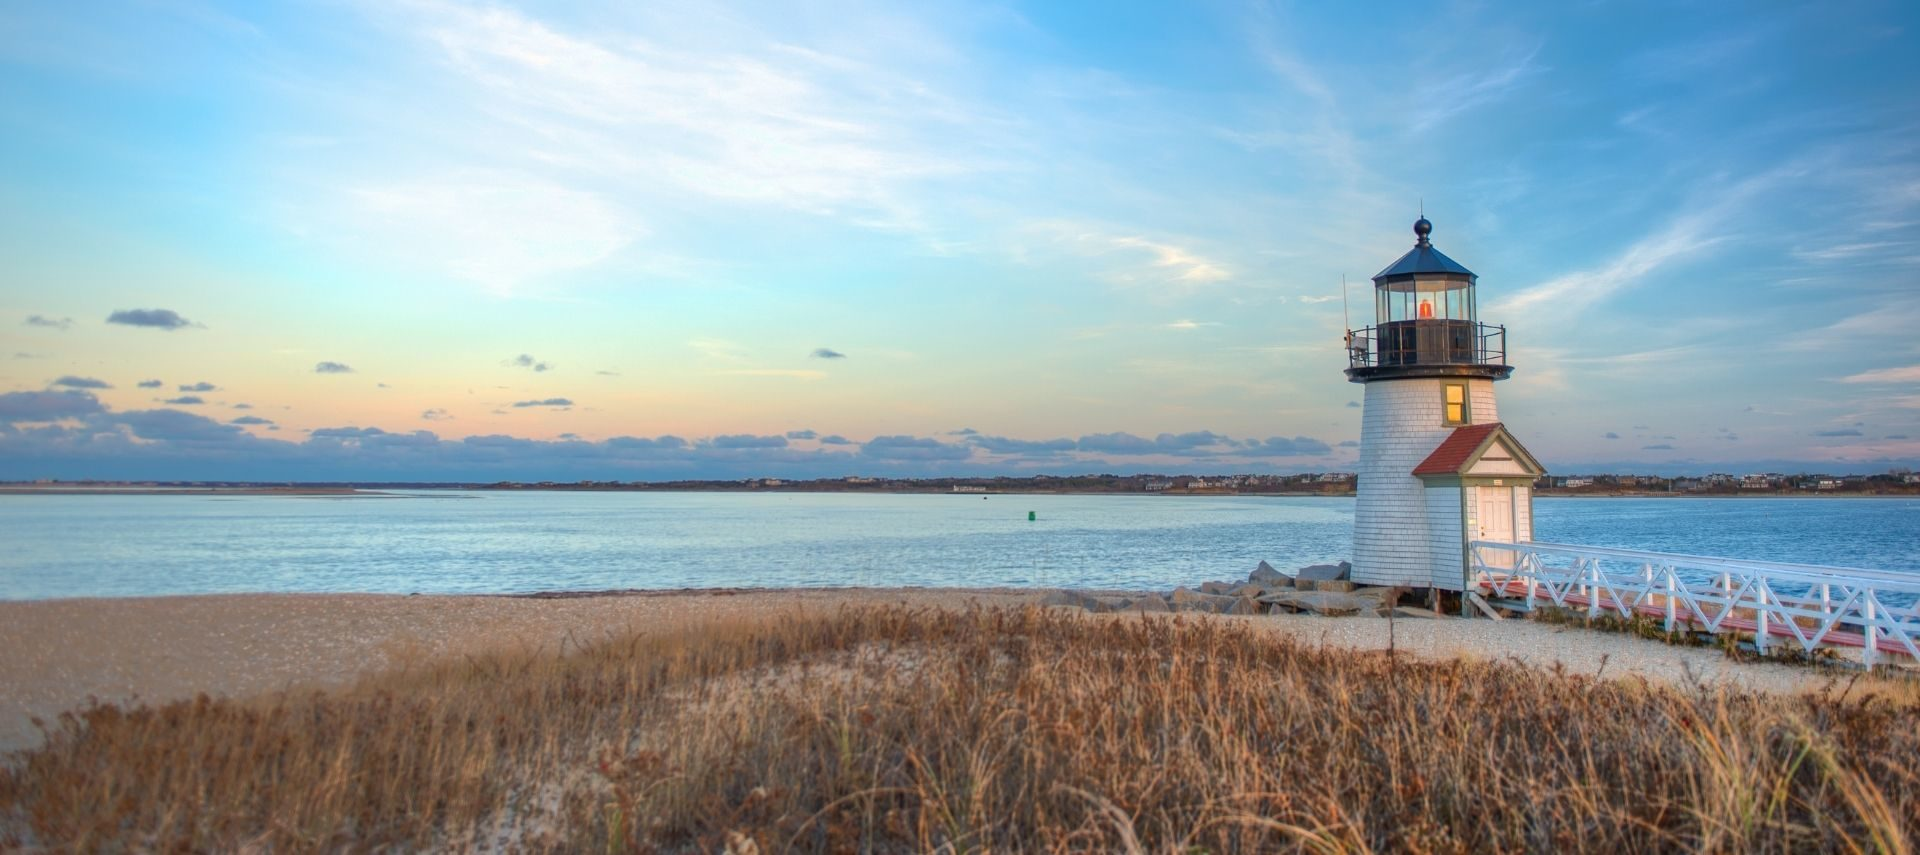 View of lighthouse and beach on Nantucket during the fall